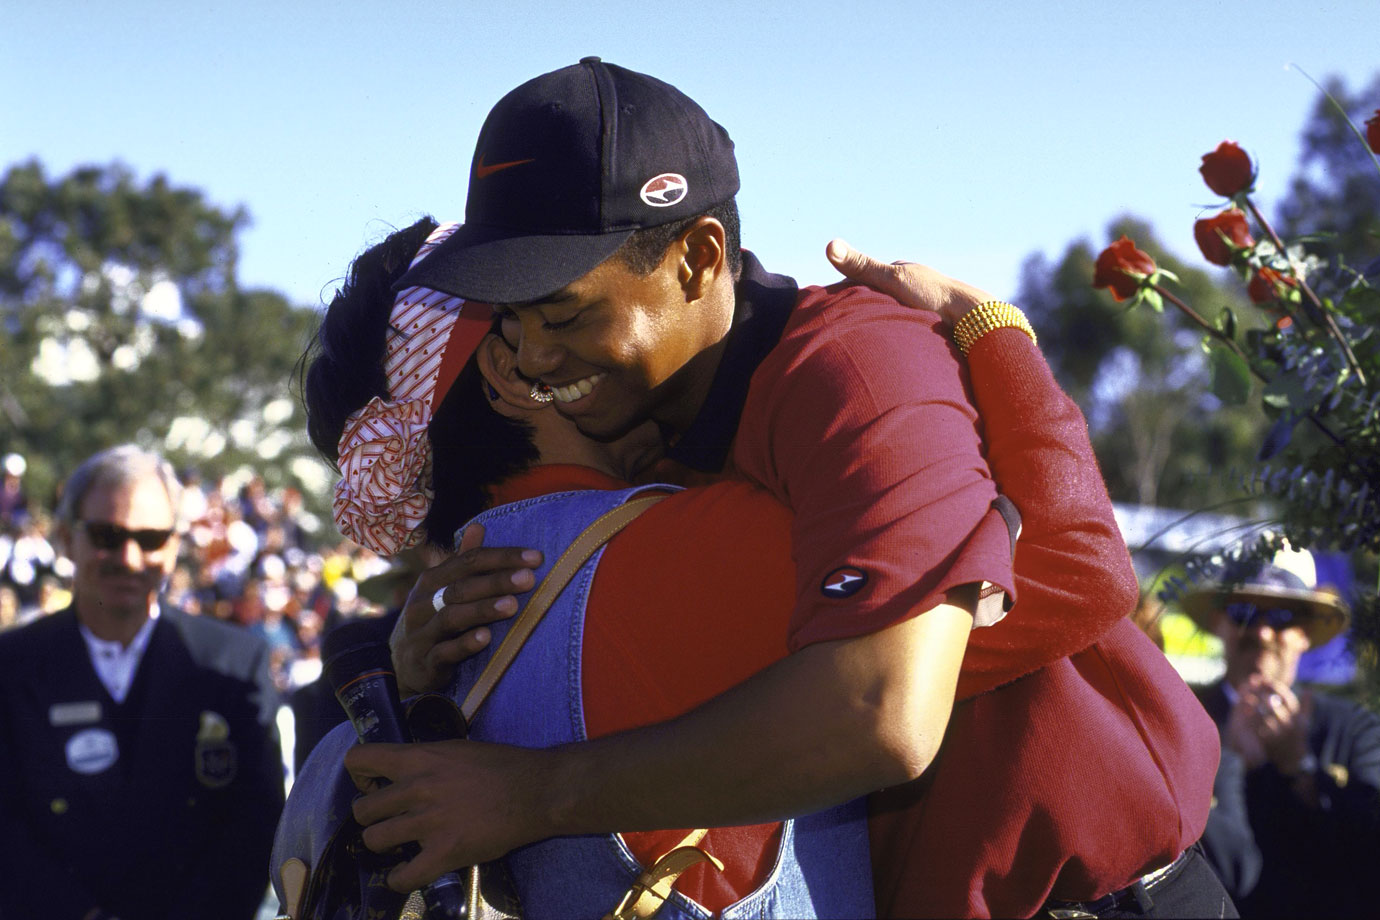 Feb. 14, 1999 — Buick Open